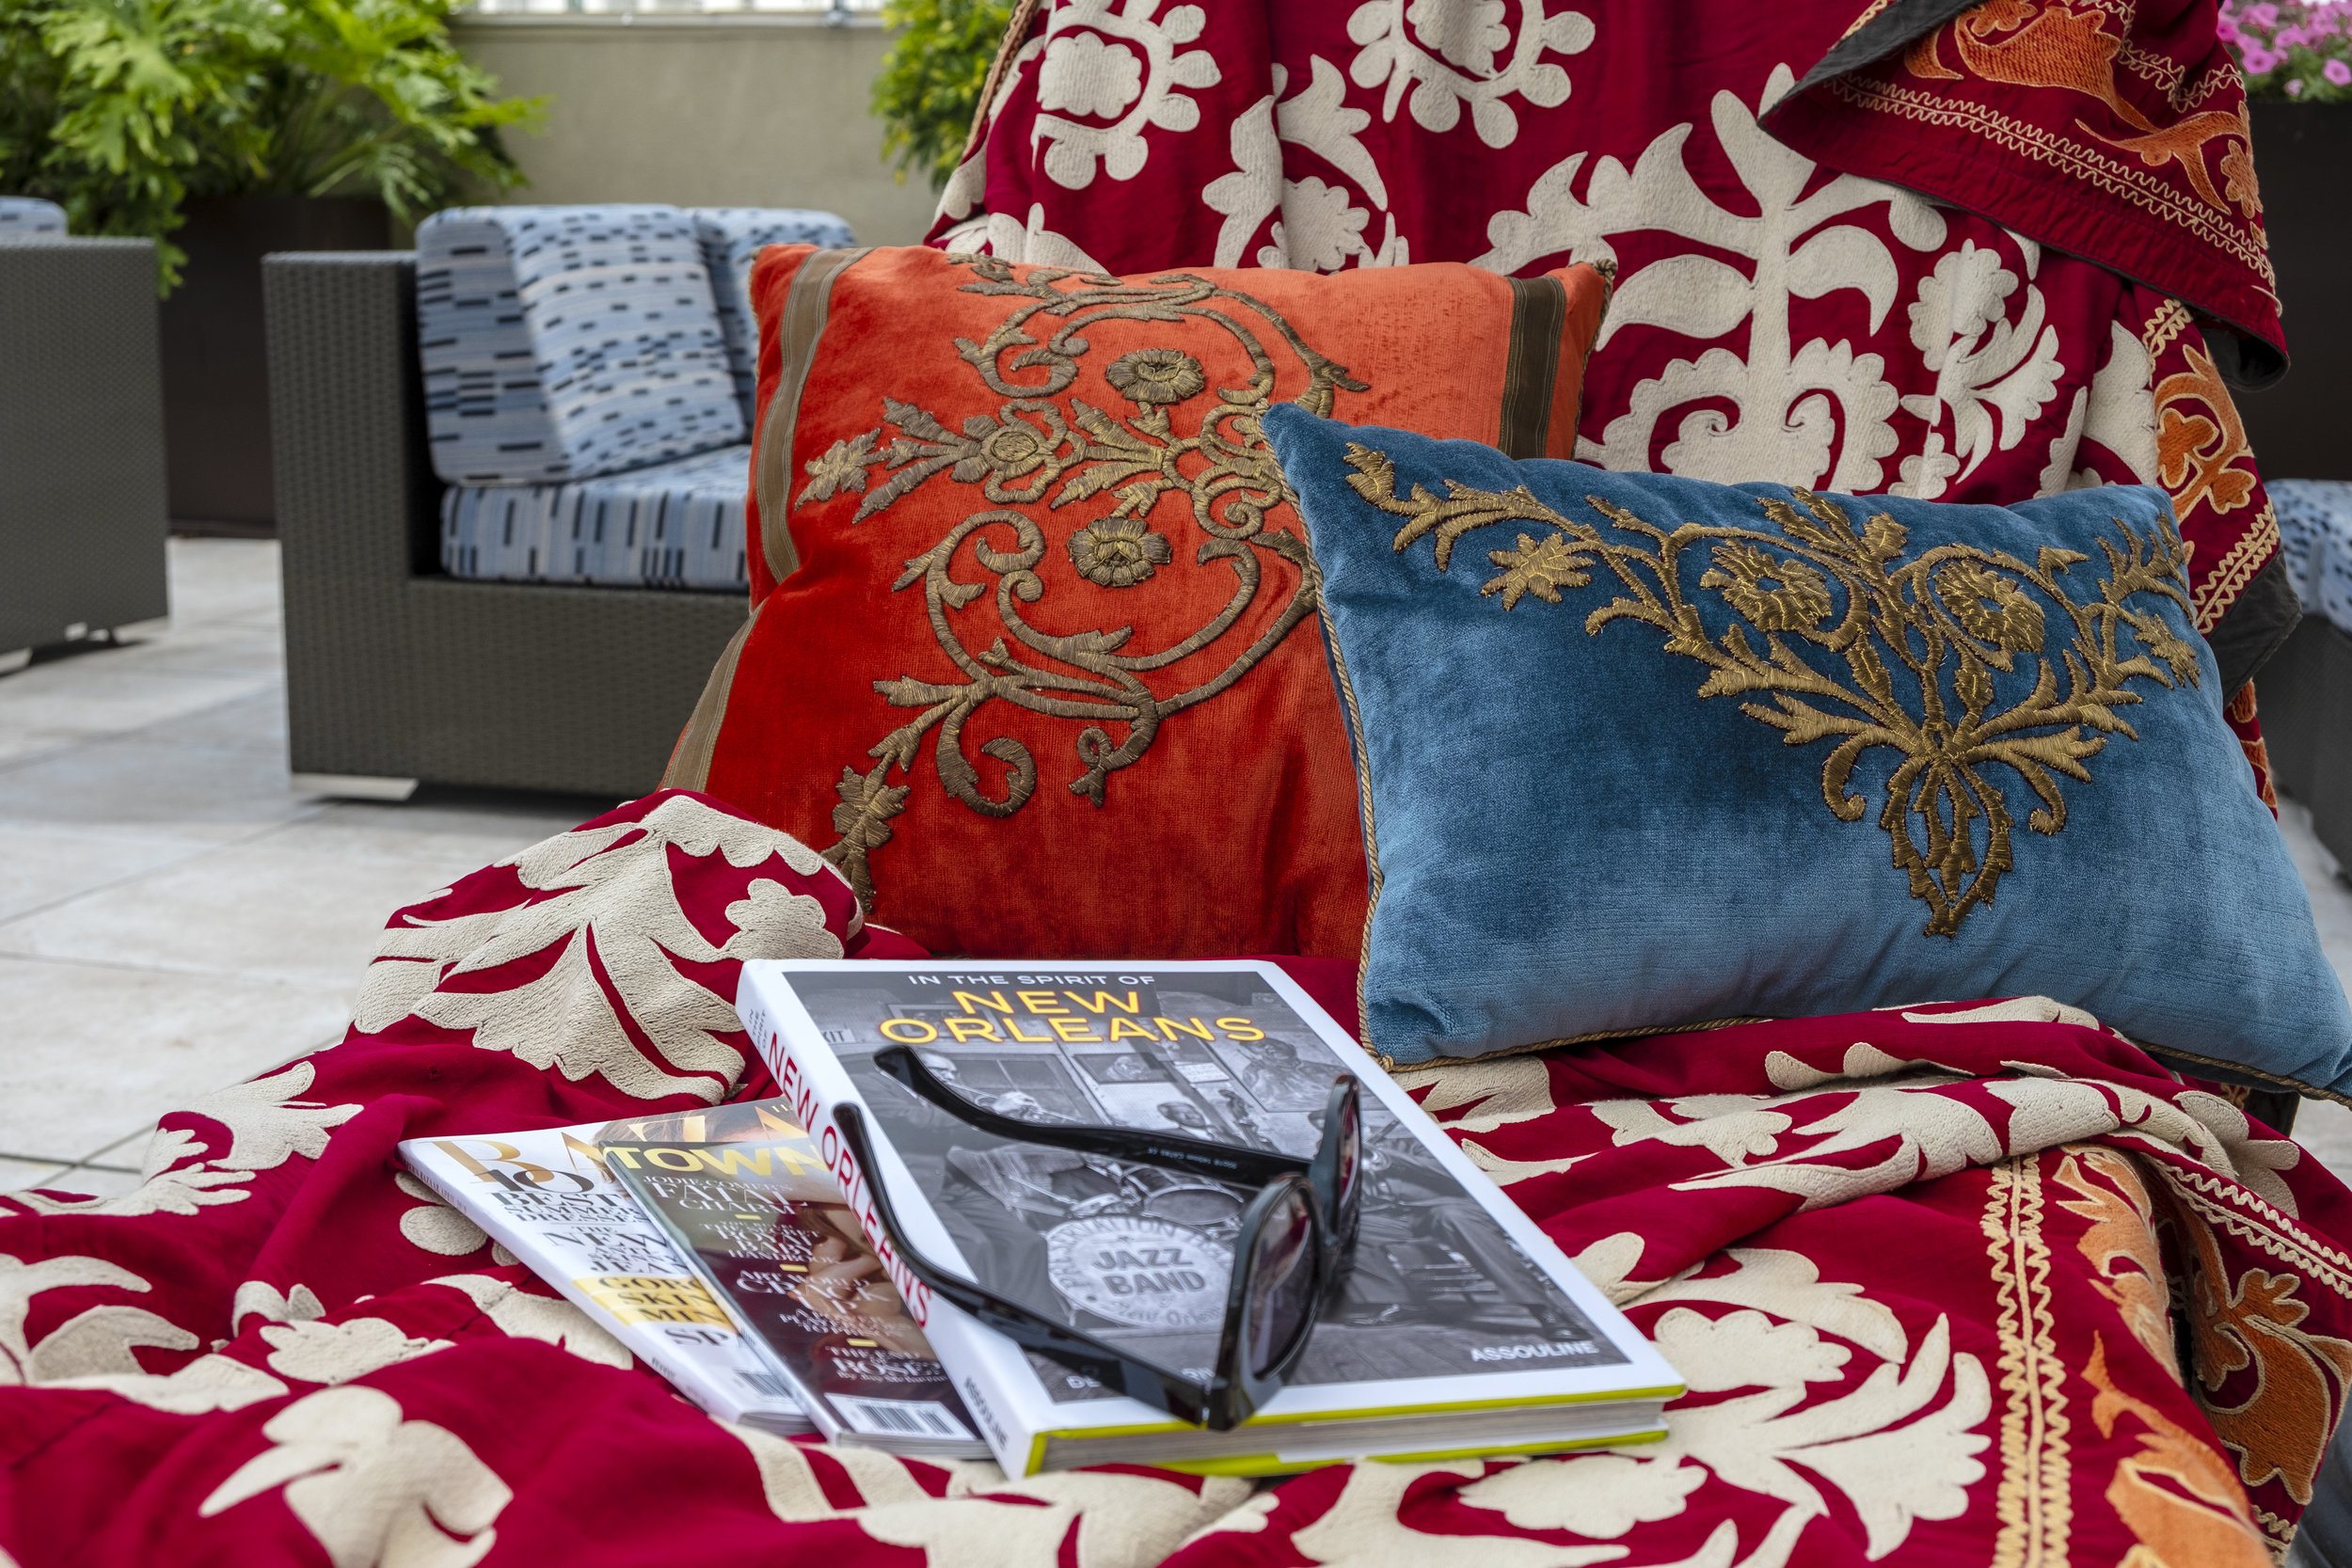 Locally-Sourced Styling Items Including Antique Textile Pillows & Fabrics by Rebecca Vizard